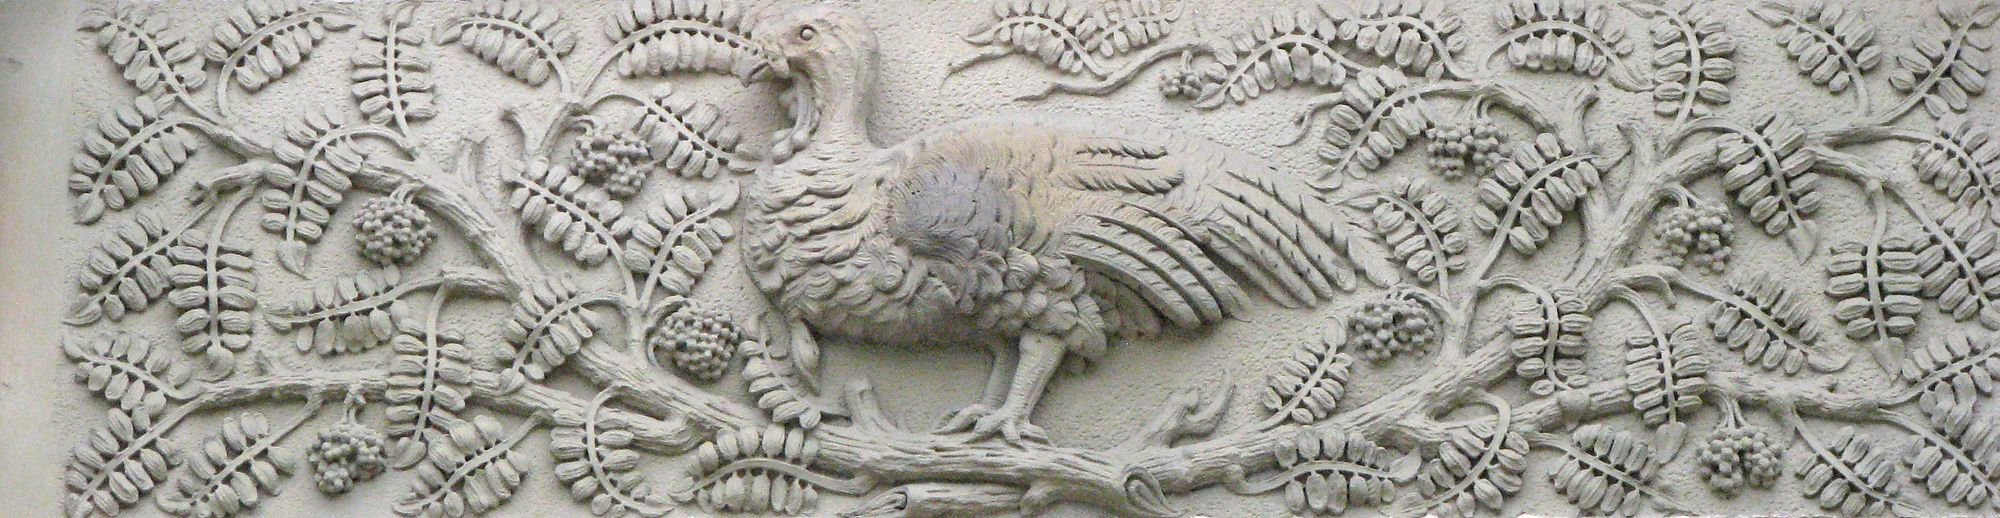 Awesome carving on the outside of the canadian museum of nature